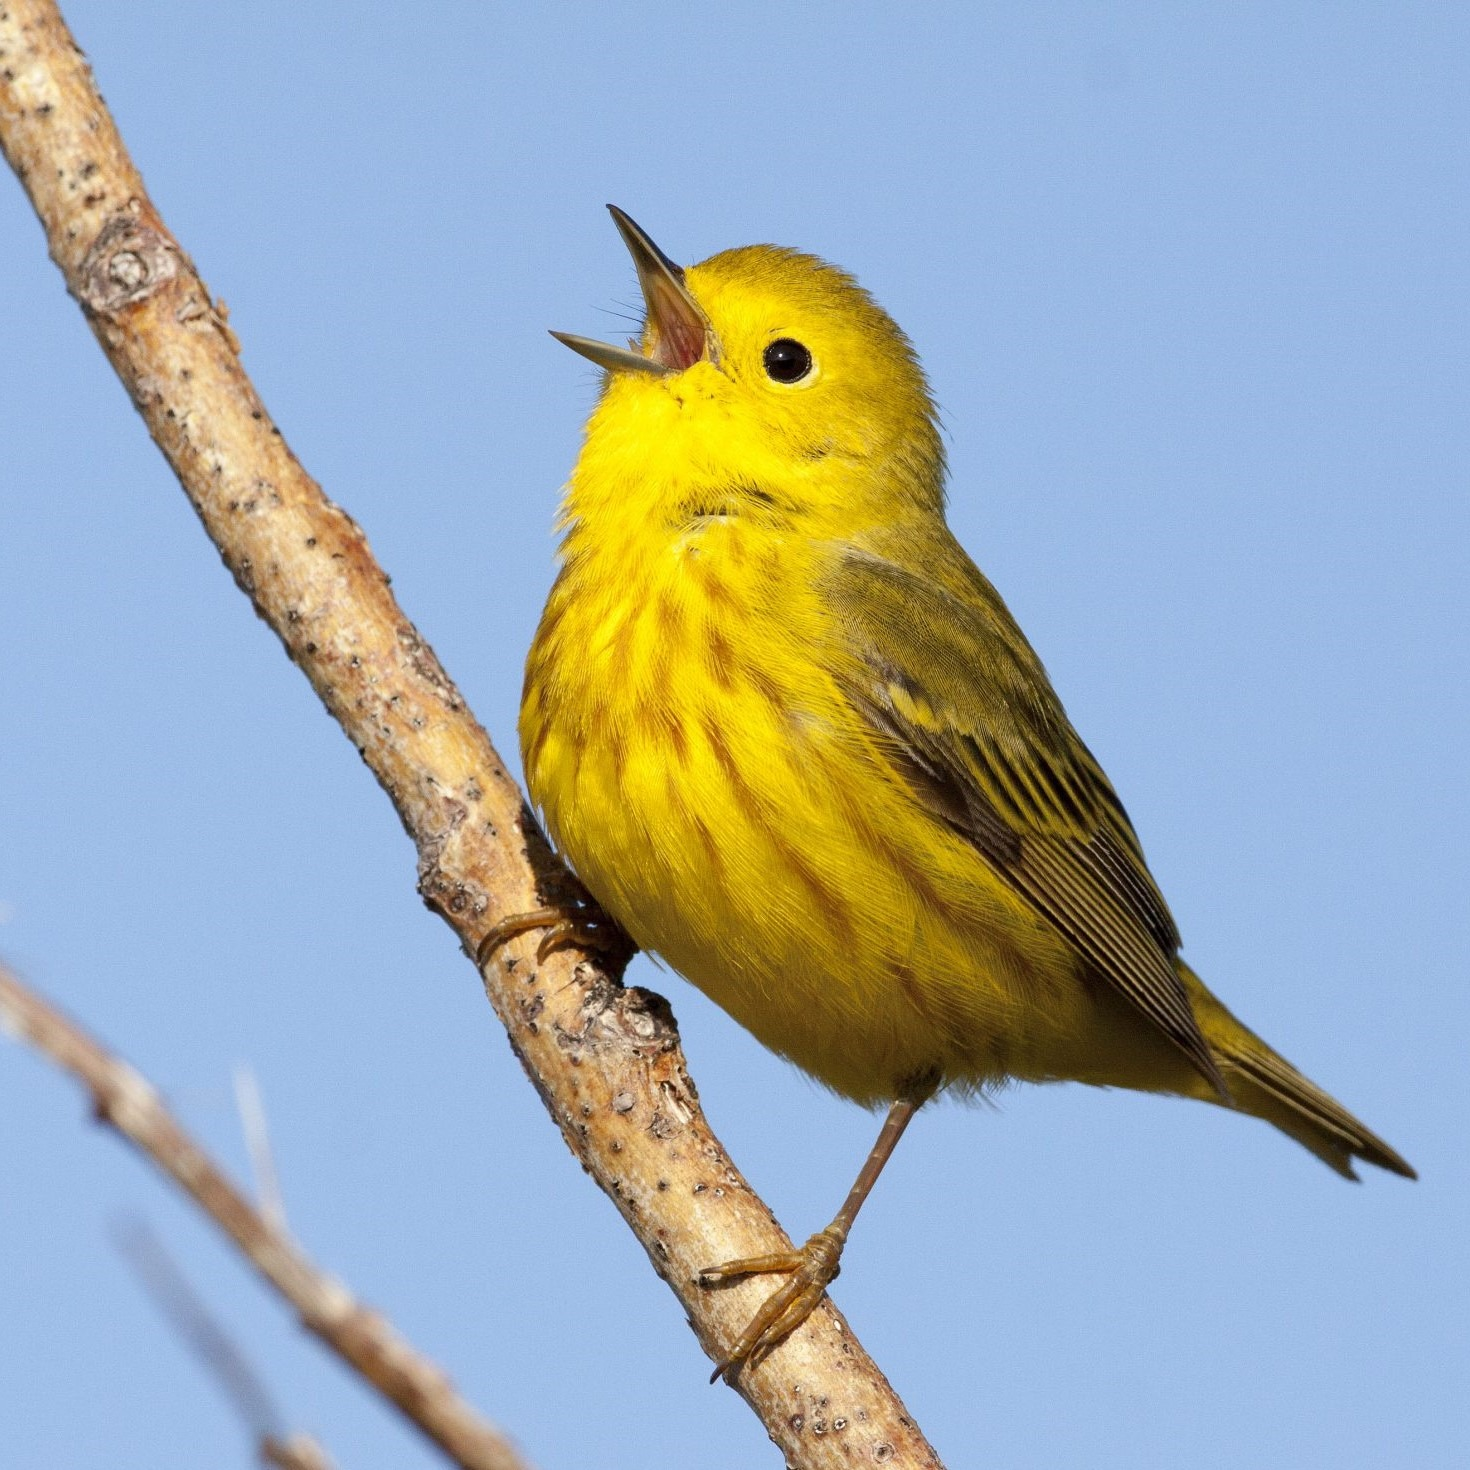 A small yellow bird sings with a puffed chest and a white open beak